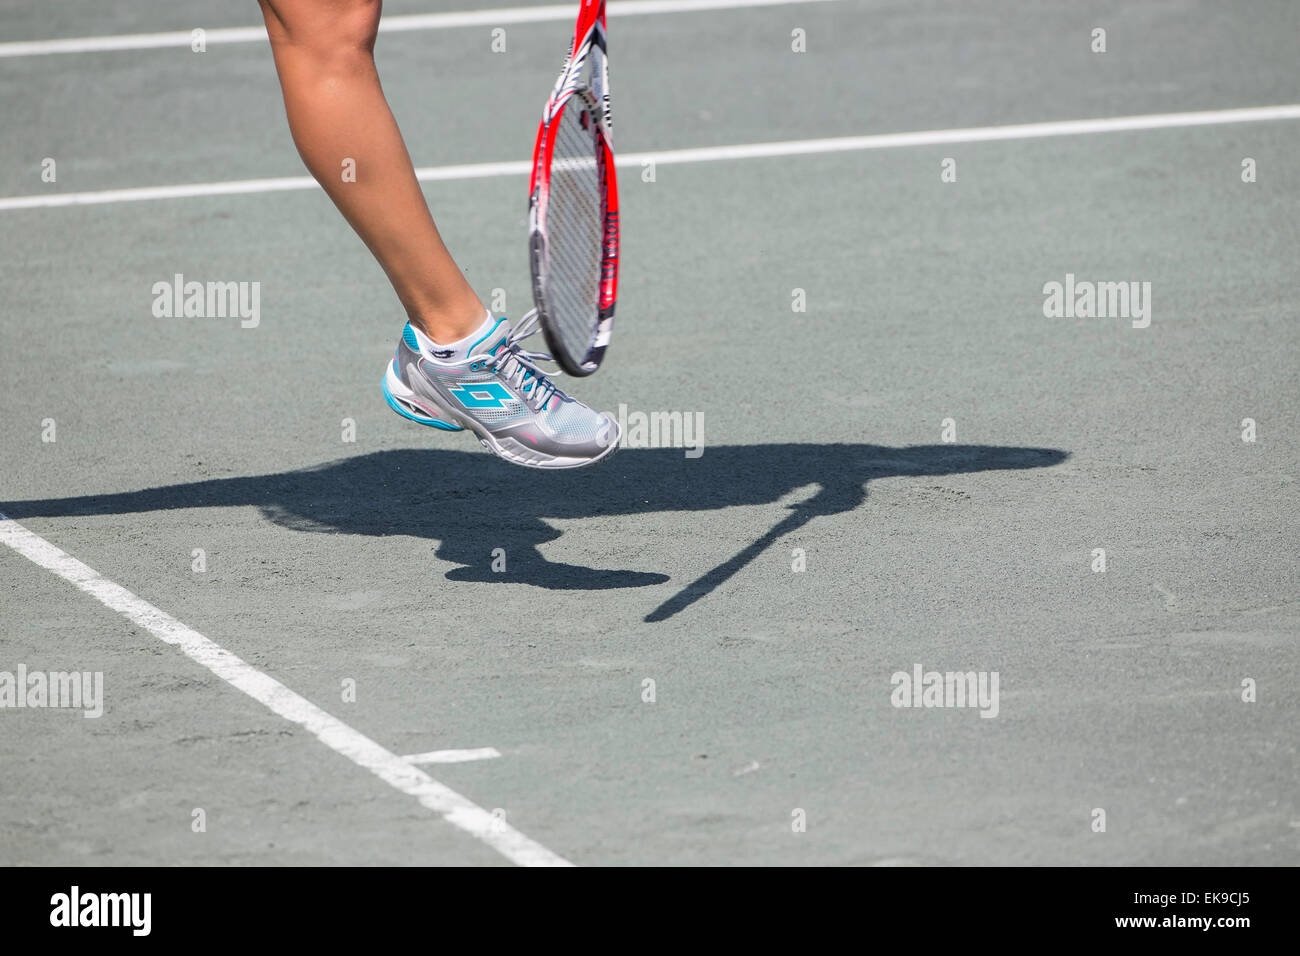 Charleston, SC, USA. 8th Apr, 2015. Charleston, SC - Apr 08, 2015: [2] E. Makarova (RUS) serves to S. Zhang (CHN) Stock Photo